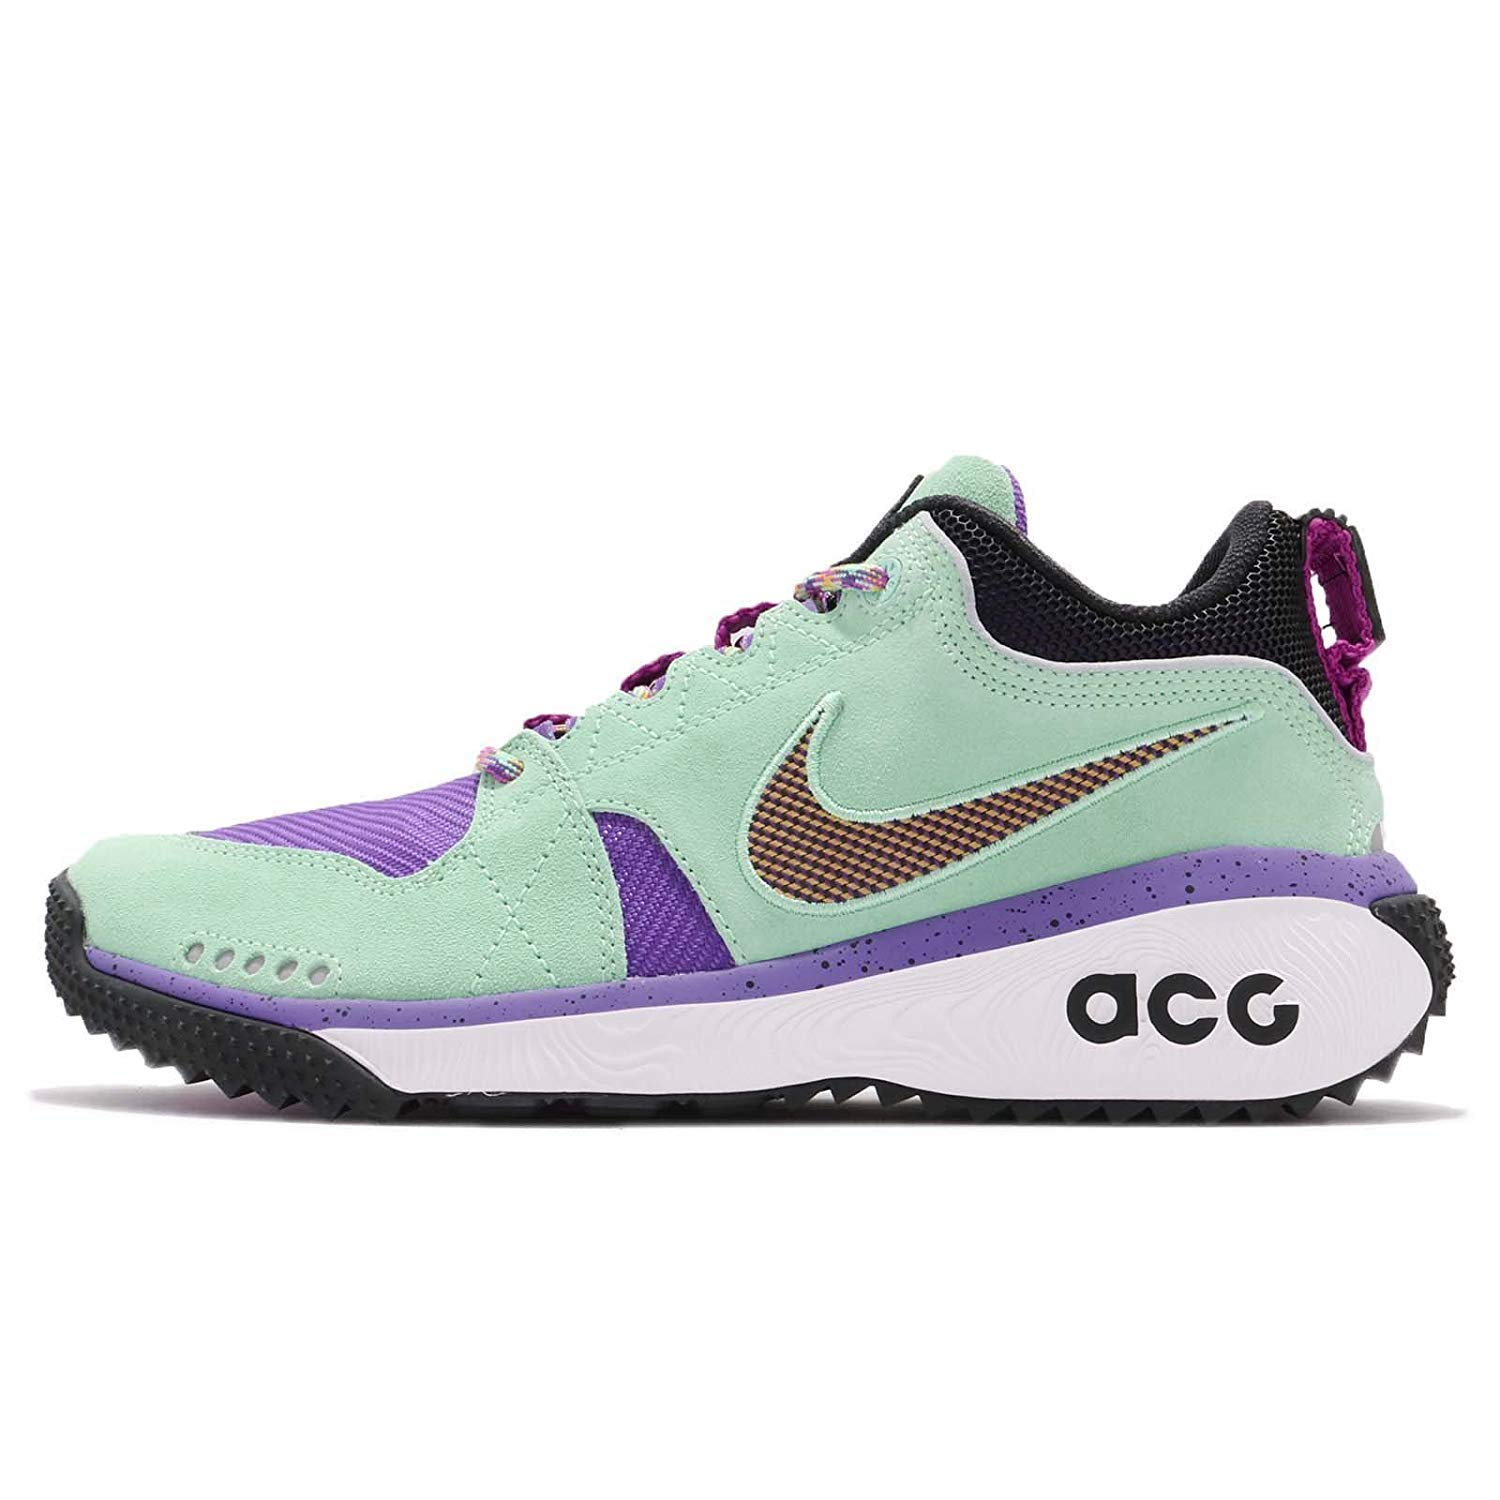 camión Expresión triunfante  Nike Men's ACG Dog Mountain Trail Running Shoes - Buy Online in El  Salvador. | nike Products in El Salvador - See Prices, Reviews and Free  Delivery over US$70.00 | Desertcart